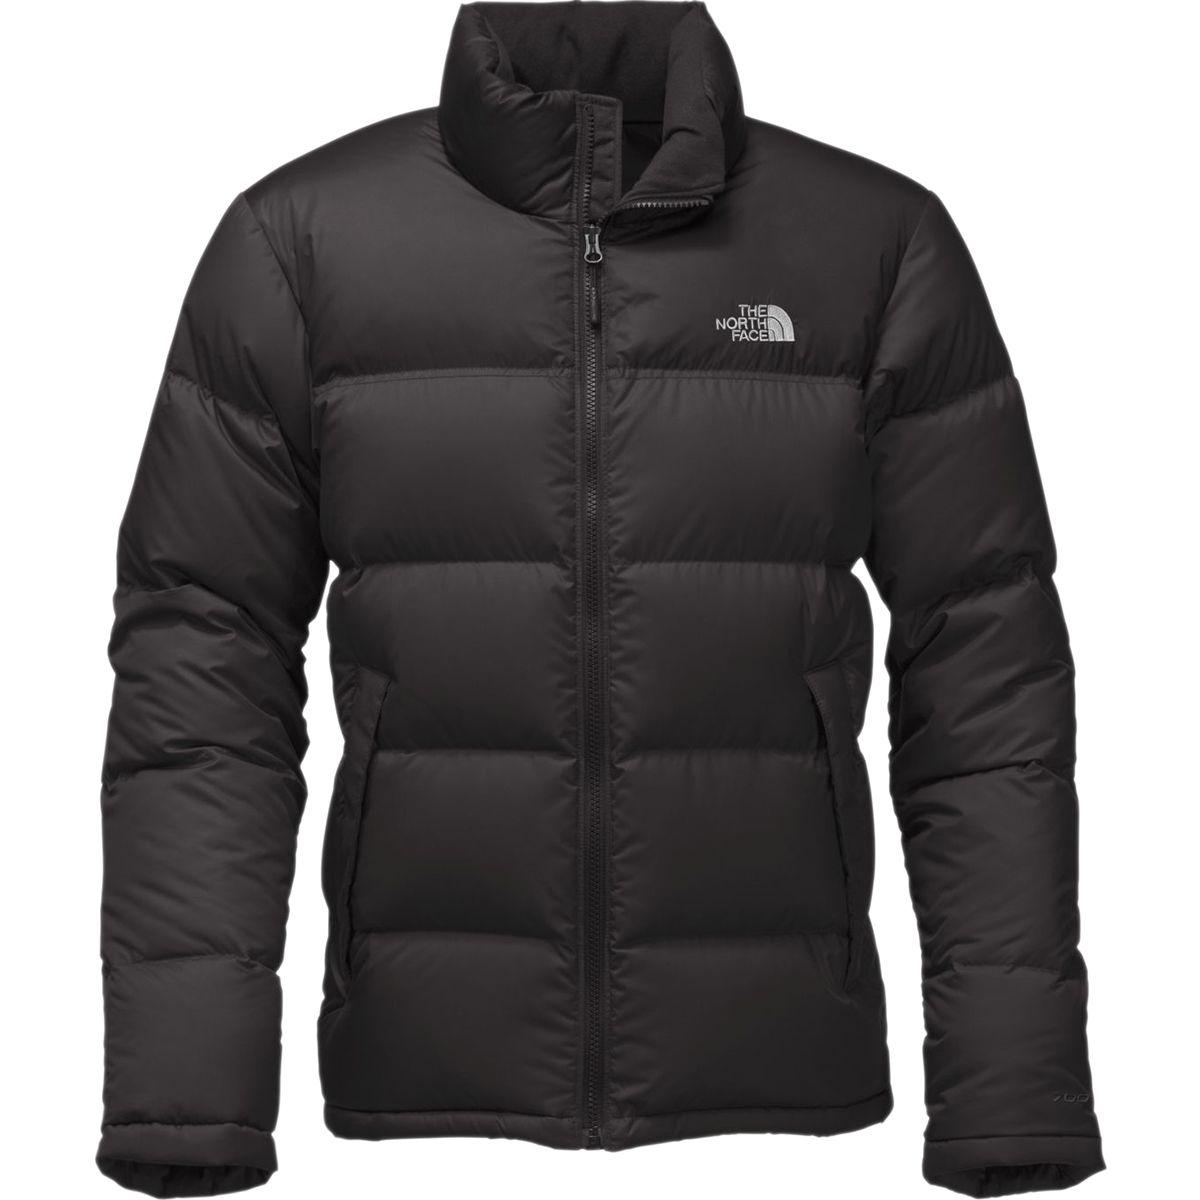 ... best price lyst the north face nuptse jacket in black for men 68c39  0b408 342b73aec